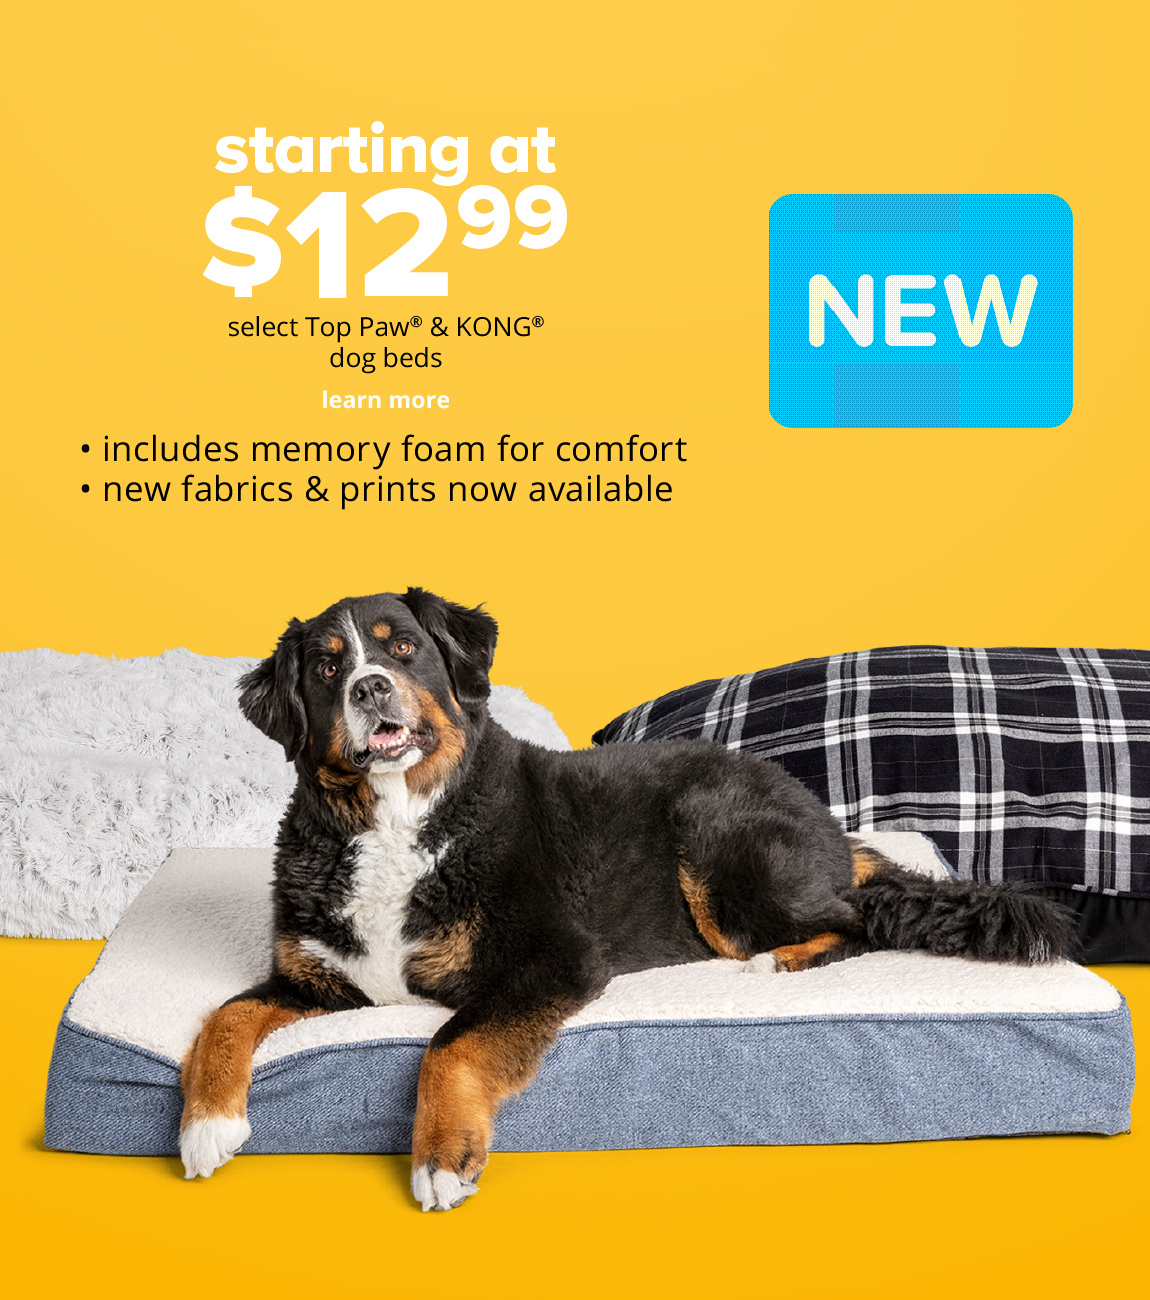 starting at $12.99 select Top Paw® & KONG® dog beds *includes memory foam for comfort *new fabrics & prints now available